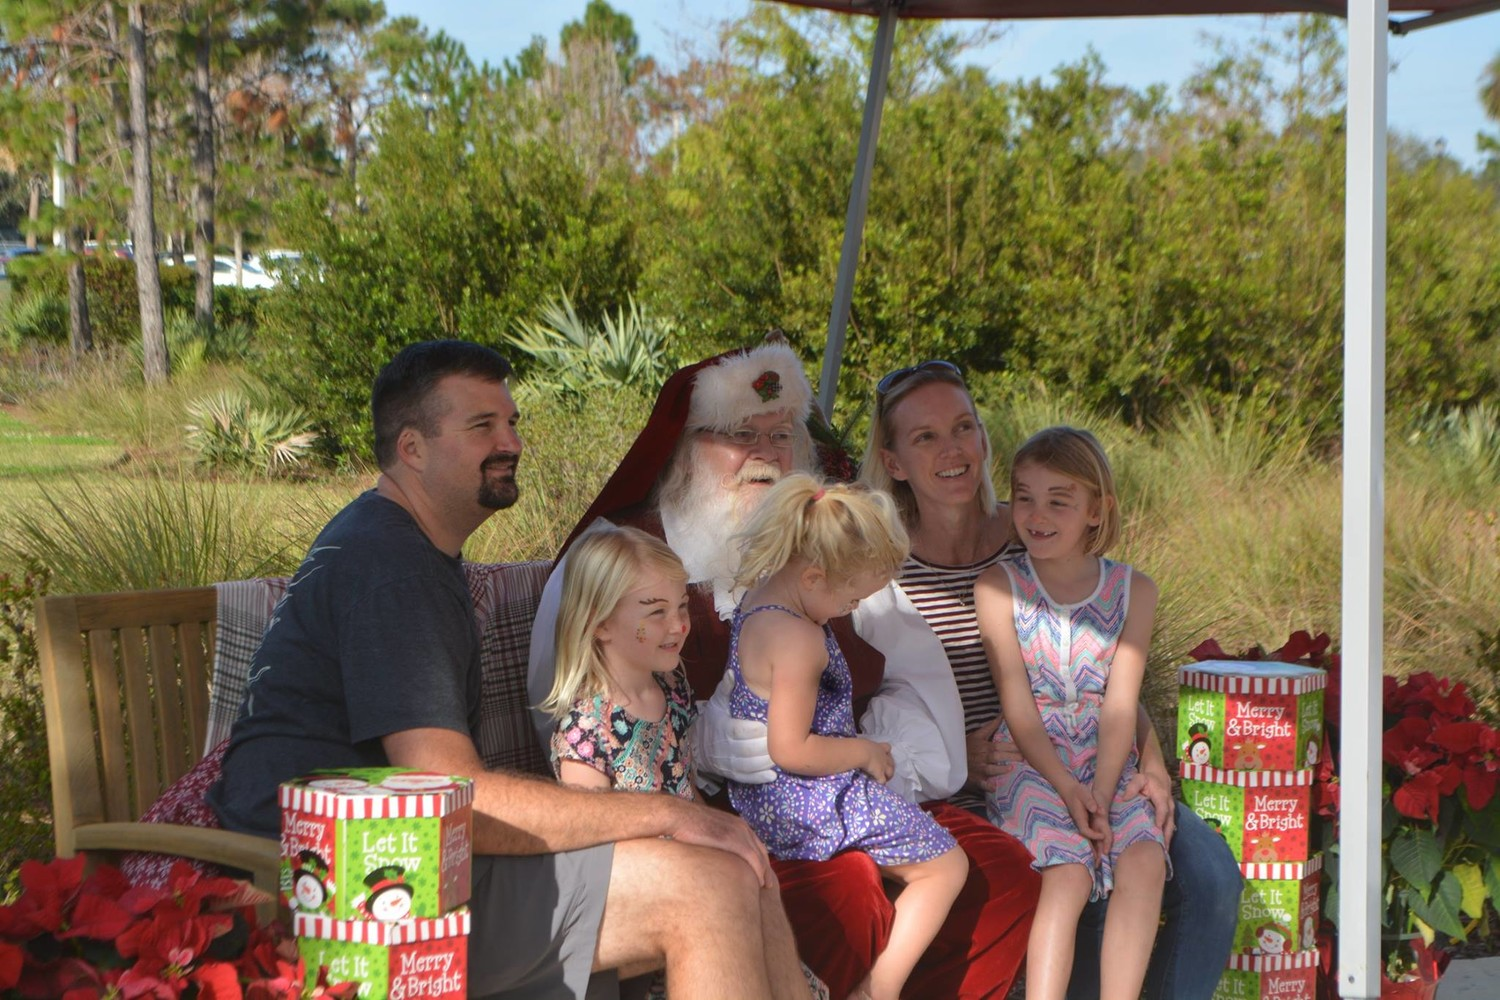 A family poses for pictures with Santa.